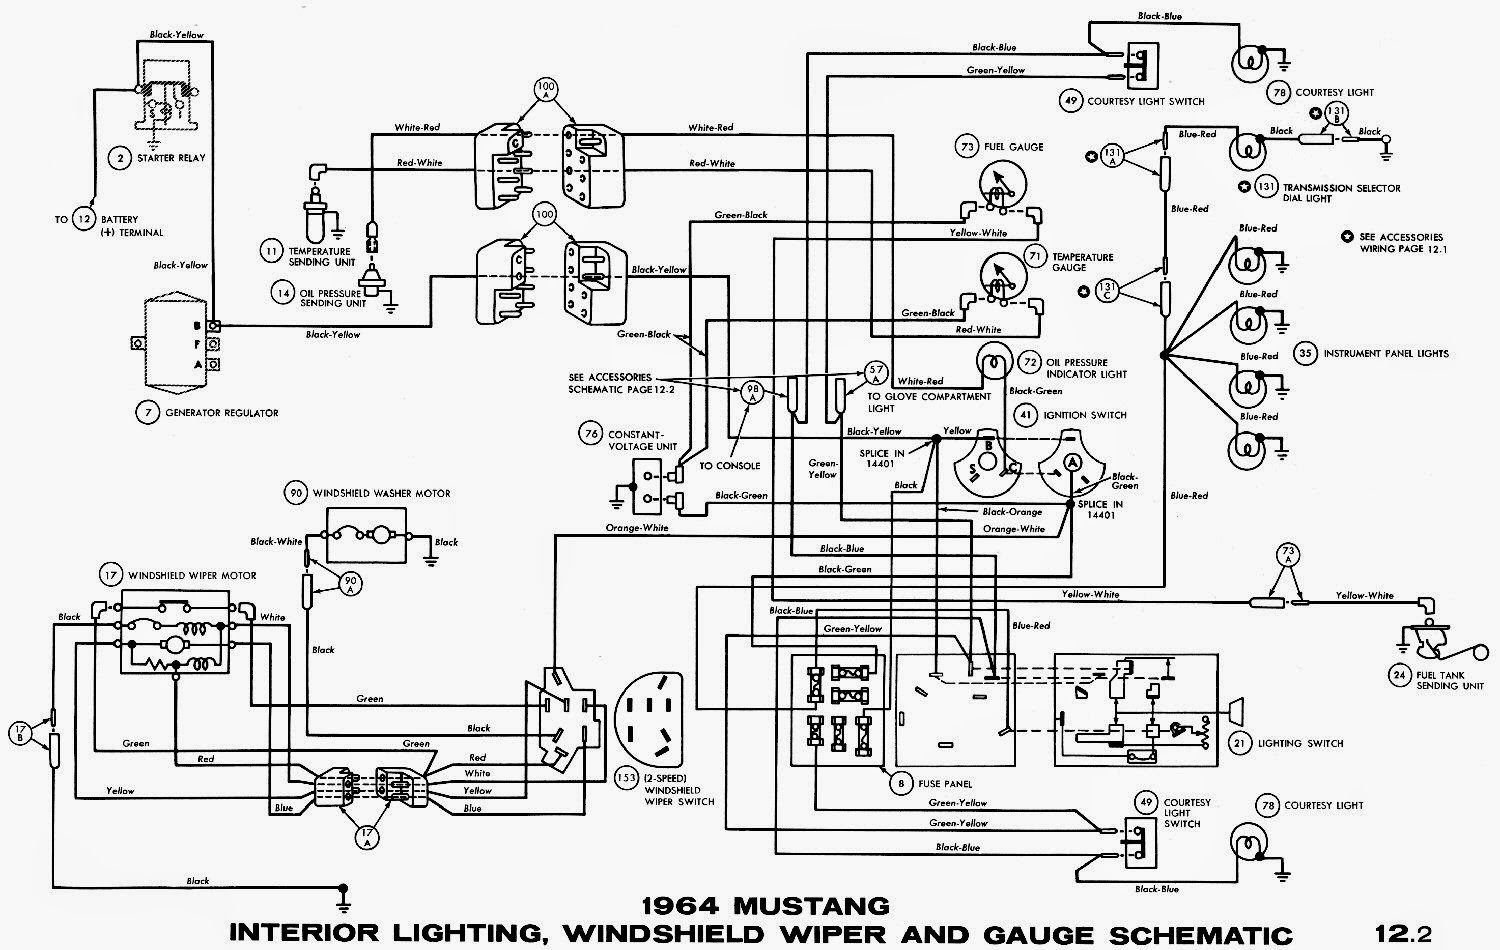 1964 mustang wiring diagrams schematic wiring diagrams rh freewiringdiagrams blogspot com 66 mustang wiring diagram 66 mustang wiring diagram